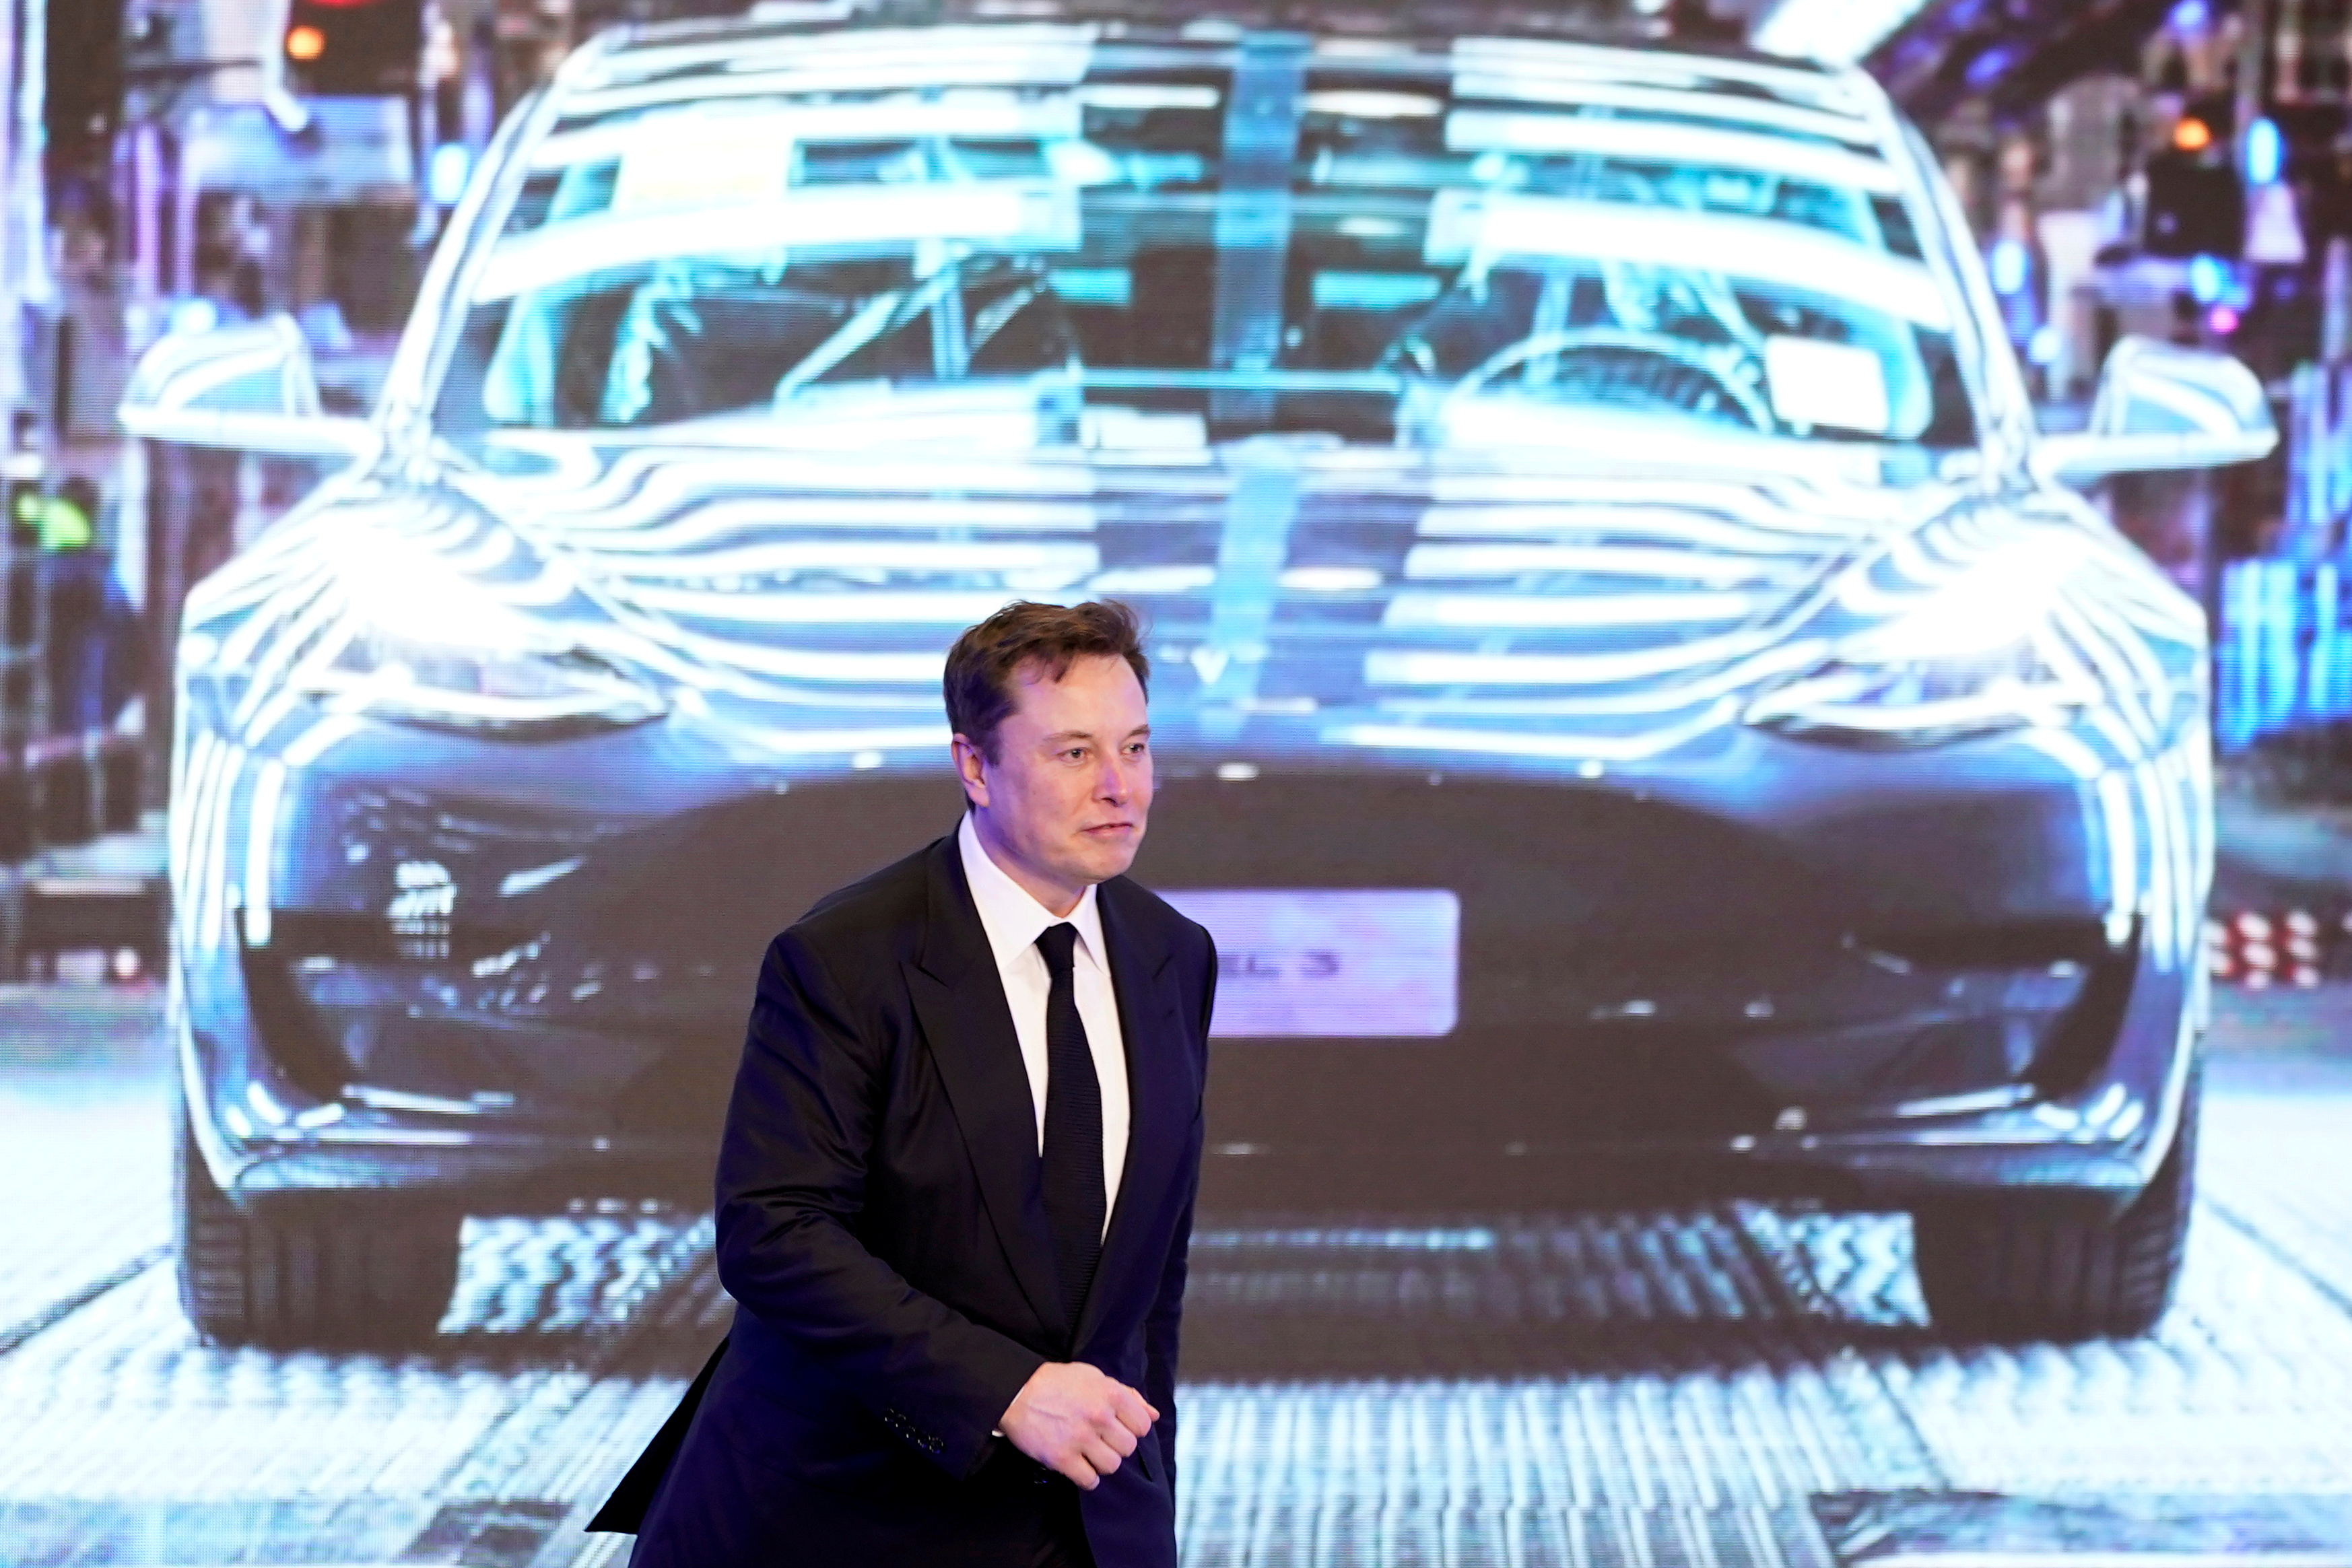 Tesla Inc CEO Elon Musk walks next to a screen showing an image of Tesla Model 3 car during an opening ceremony for Tesla China-made Model Y program in Shanghai, China January 7, 2020. REUTERS/Aly Song/File Photo - RC2ASO93VIEI